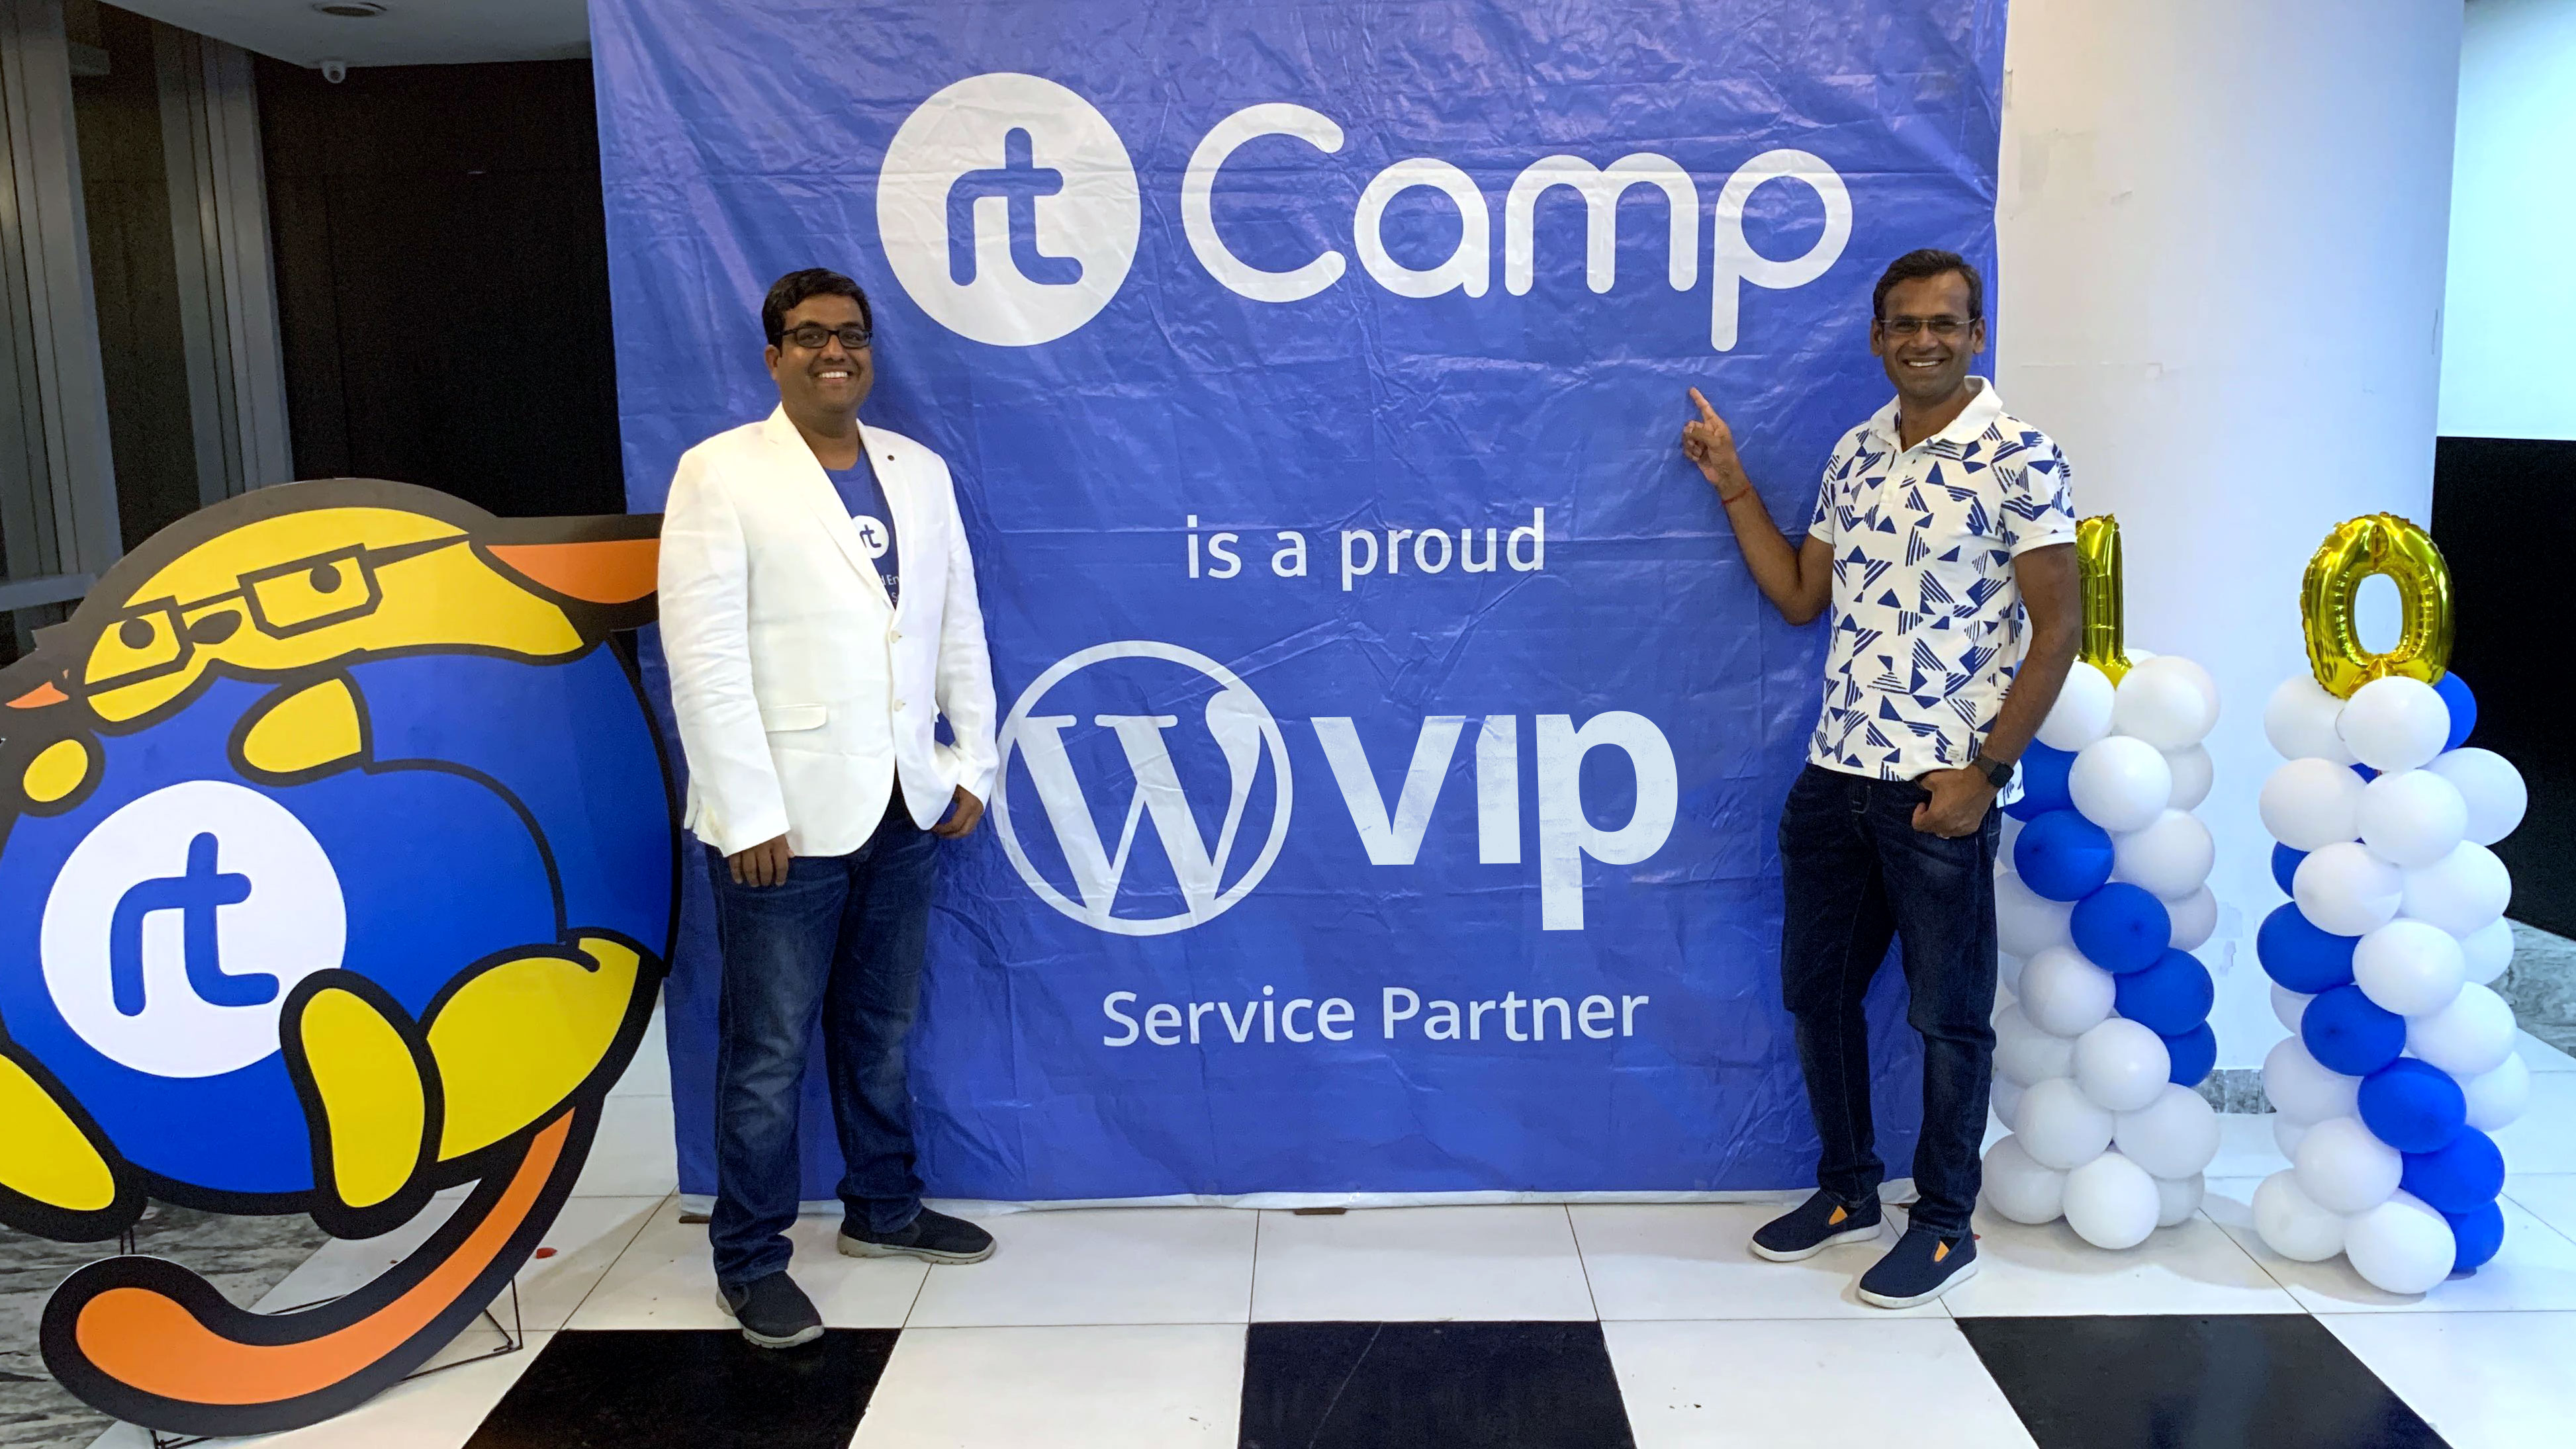 At WordCamp Kolkata, CEO of rtCamp Rahul Bansal wears a white blazer and poses next to VIP Anand Natarajan in front of a blue banner celebrating rtCamp as a featured partner of WordPress VIP